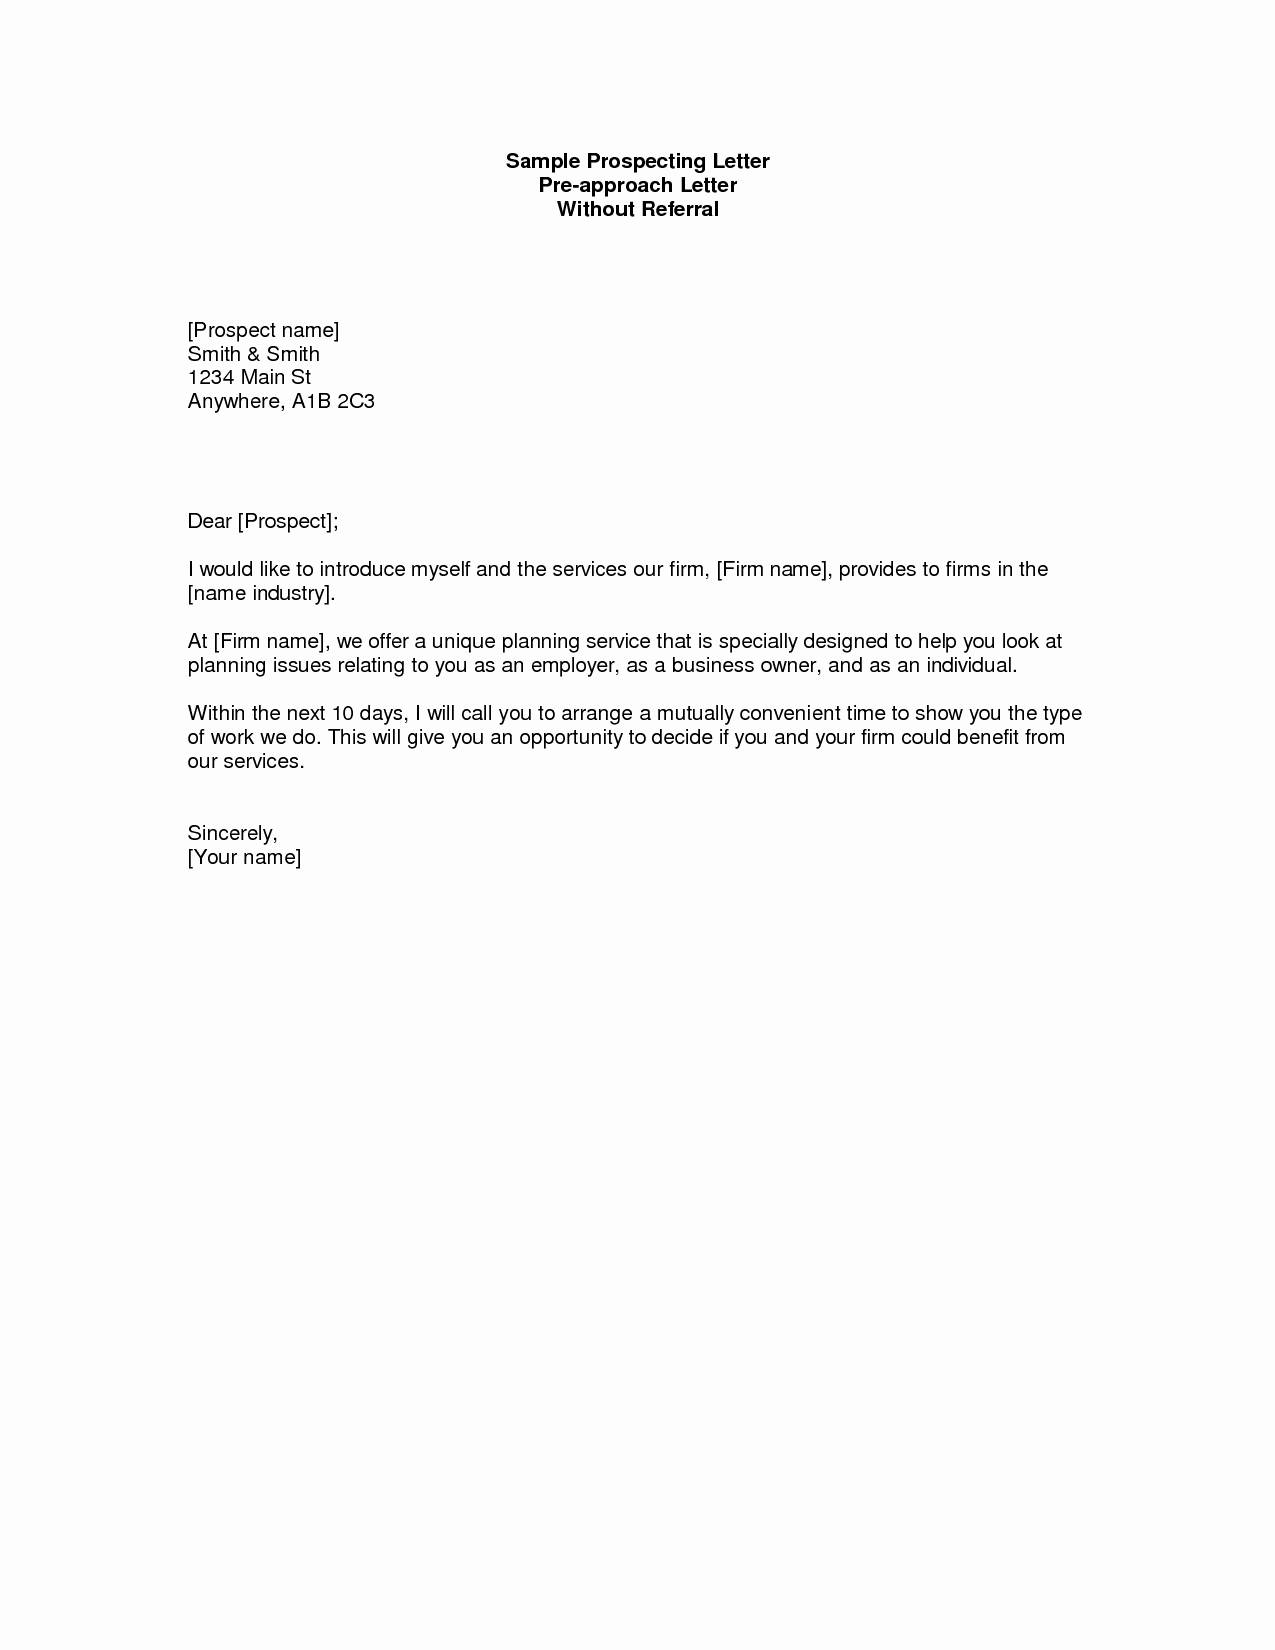 Real Estate Prospecting Letter Templates